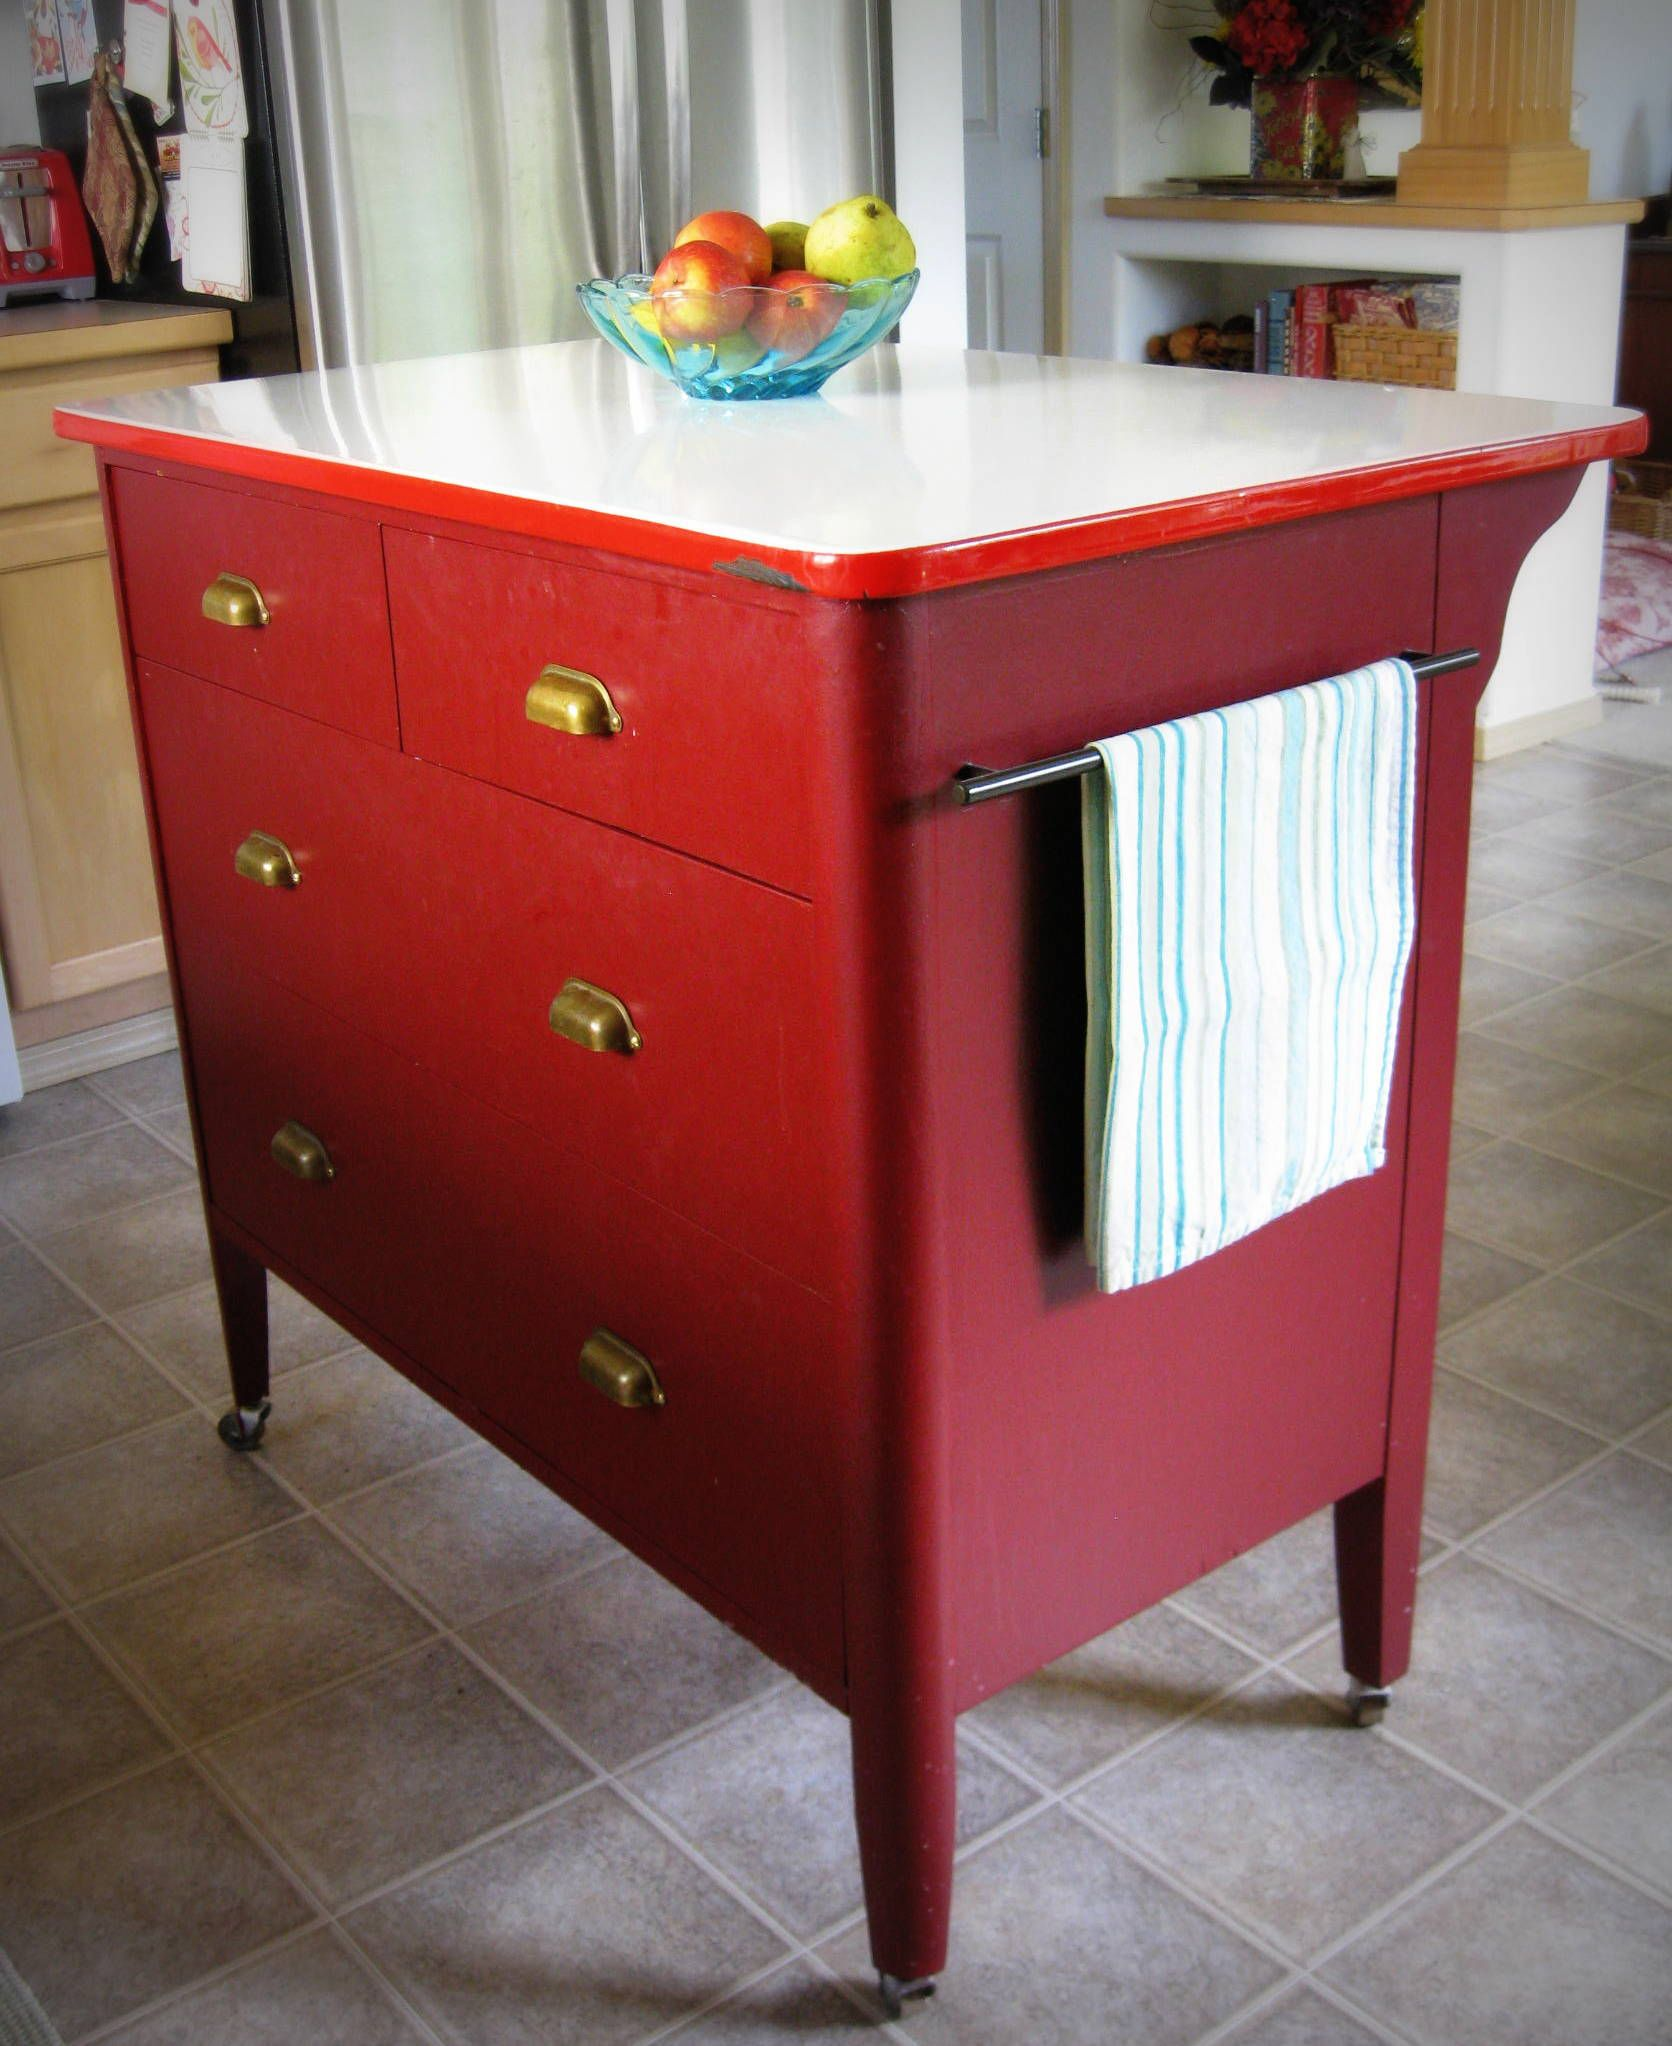 Kitchen Islands Made From Old Furniture: Dresser Turned Into Kitchen Island. Took Dumpy, Yellow